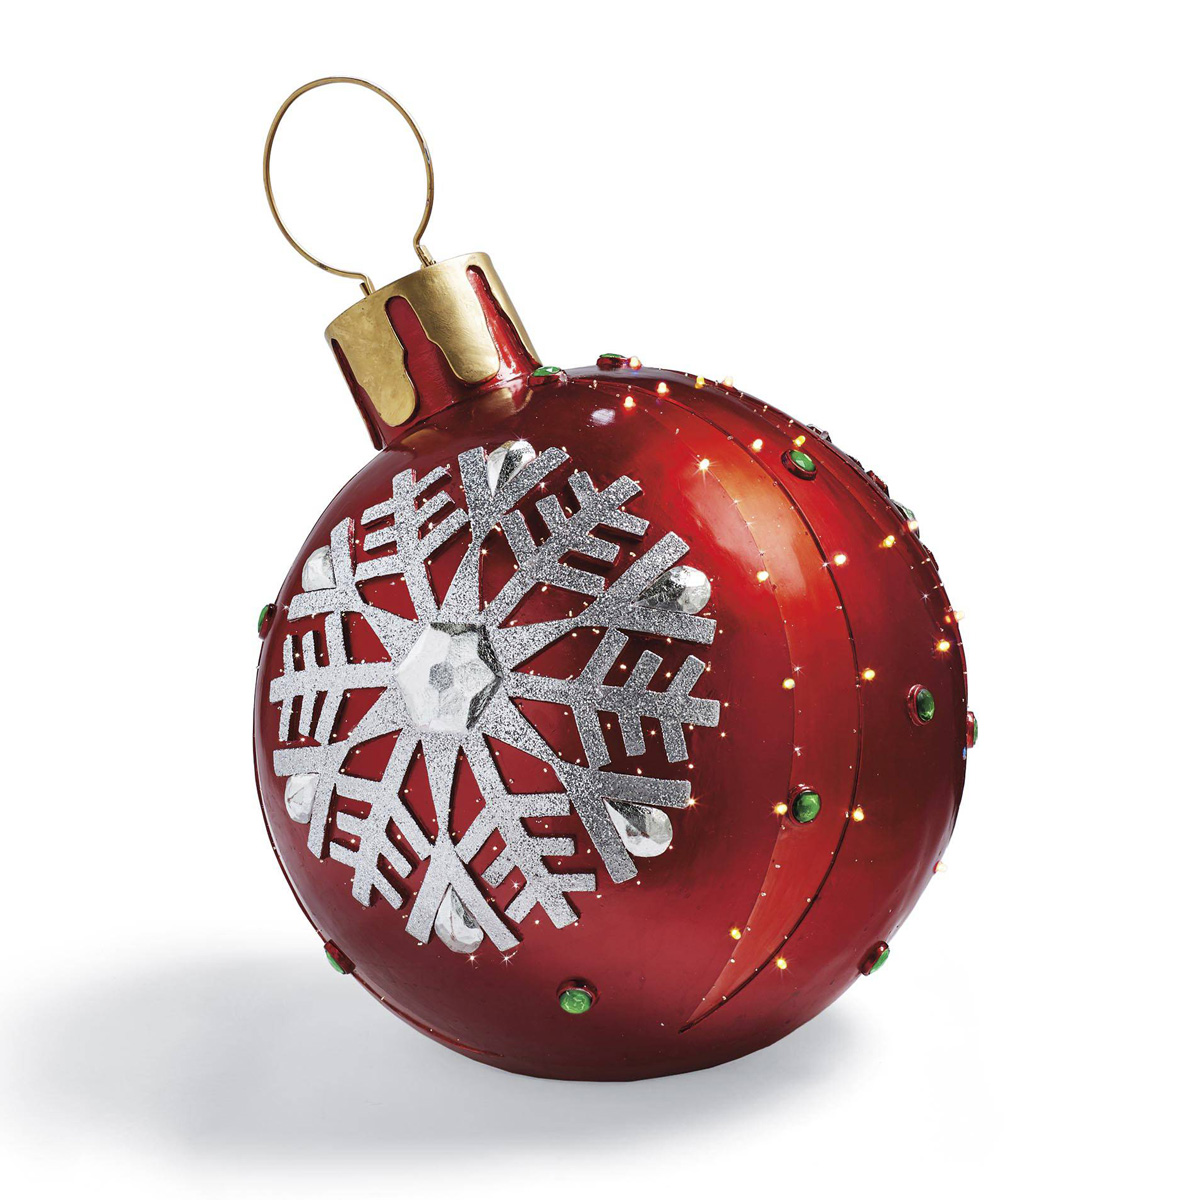 Lighted Christmas Ornaments